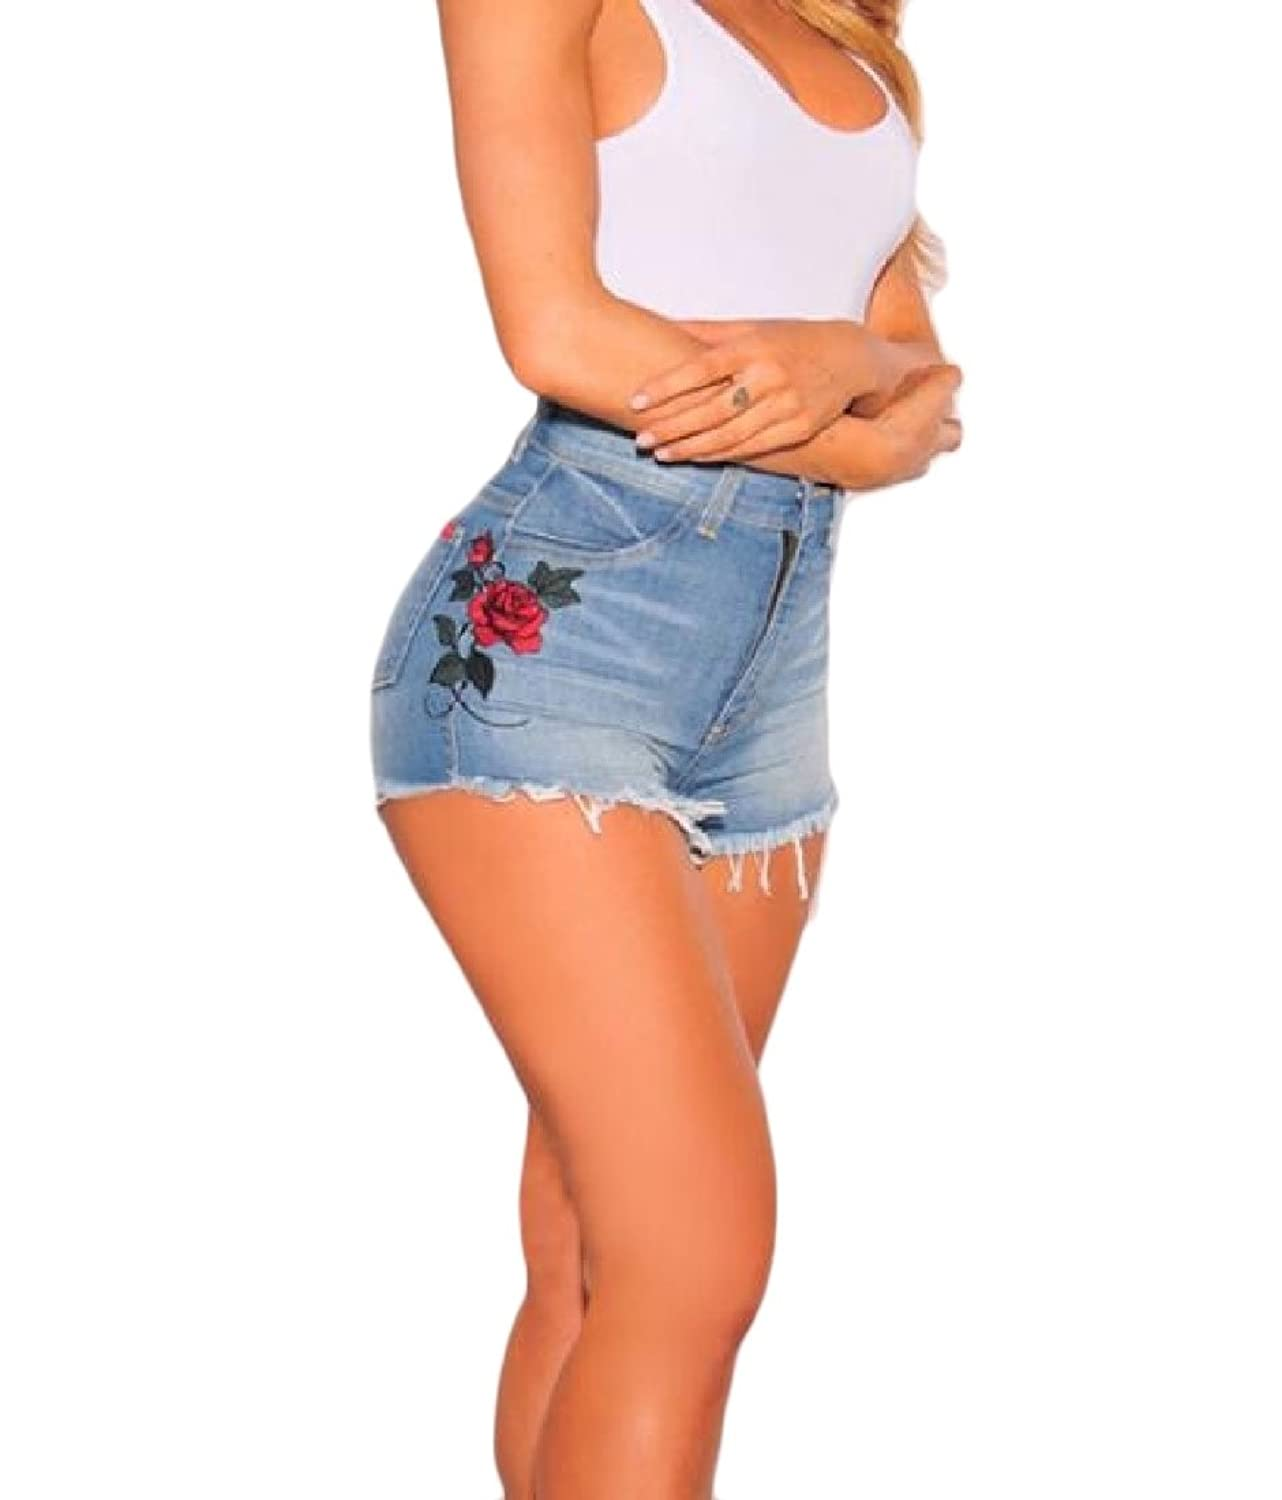 Abetteric Women Embroidery Hot Pants High Waist Sexy Slim Fitting Straight Shorts Jeans Blue M